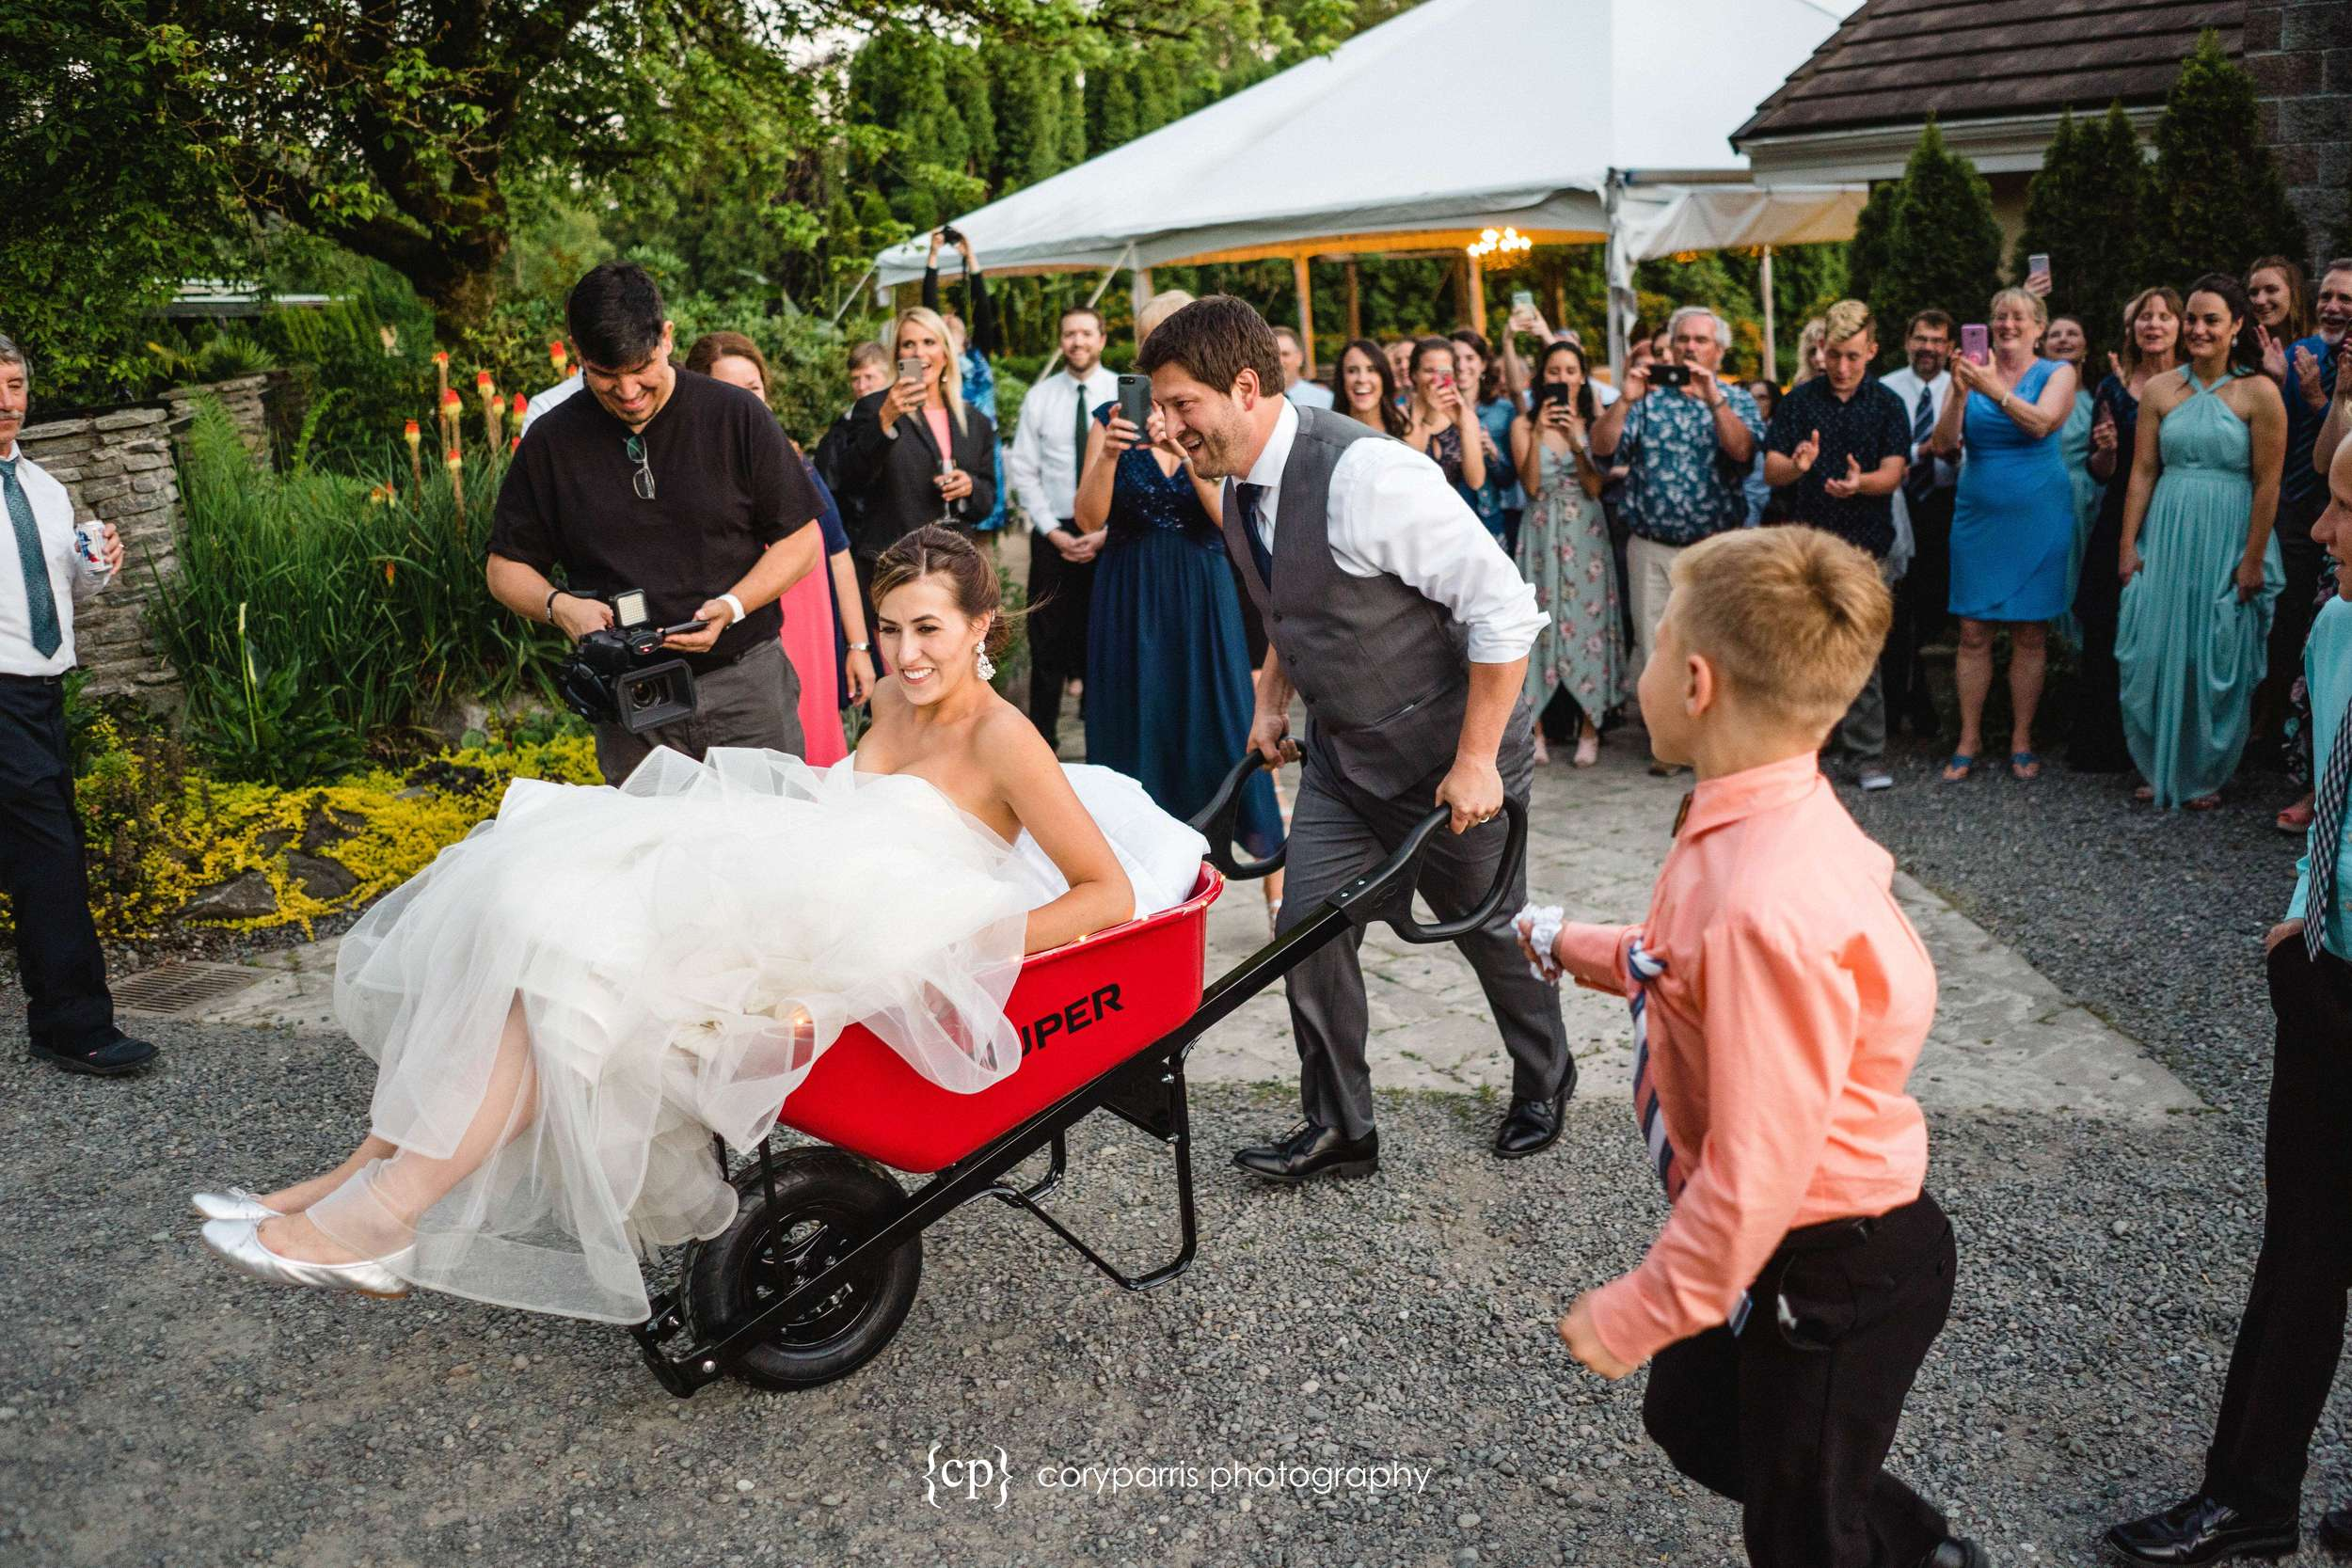 Bride in a wheelbarrow. Evidently a family tradition that I had not heard of before this wedding!